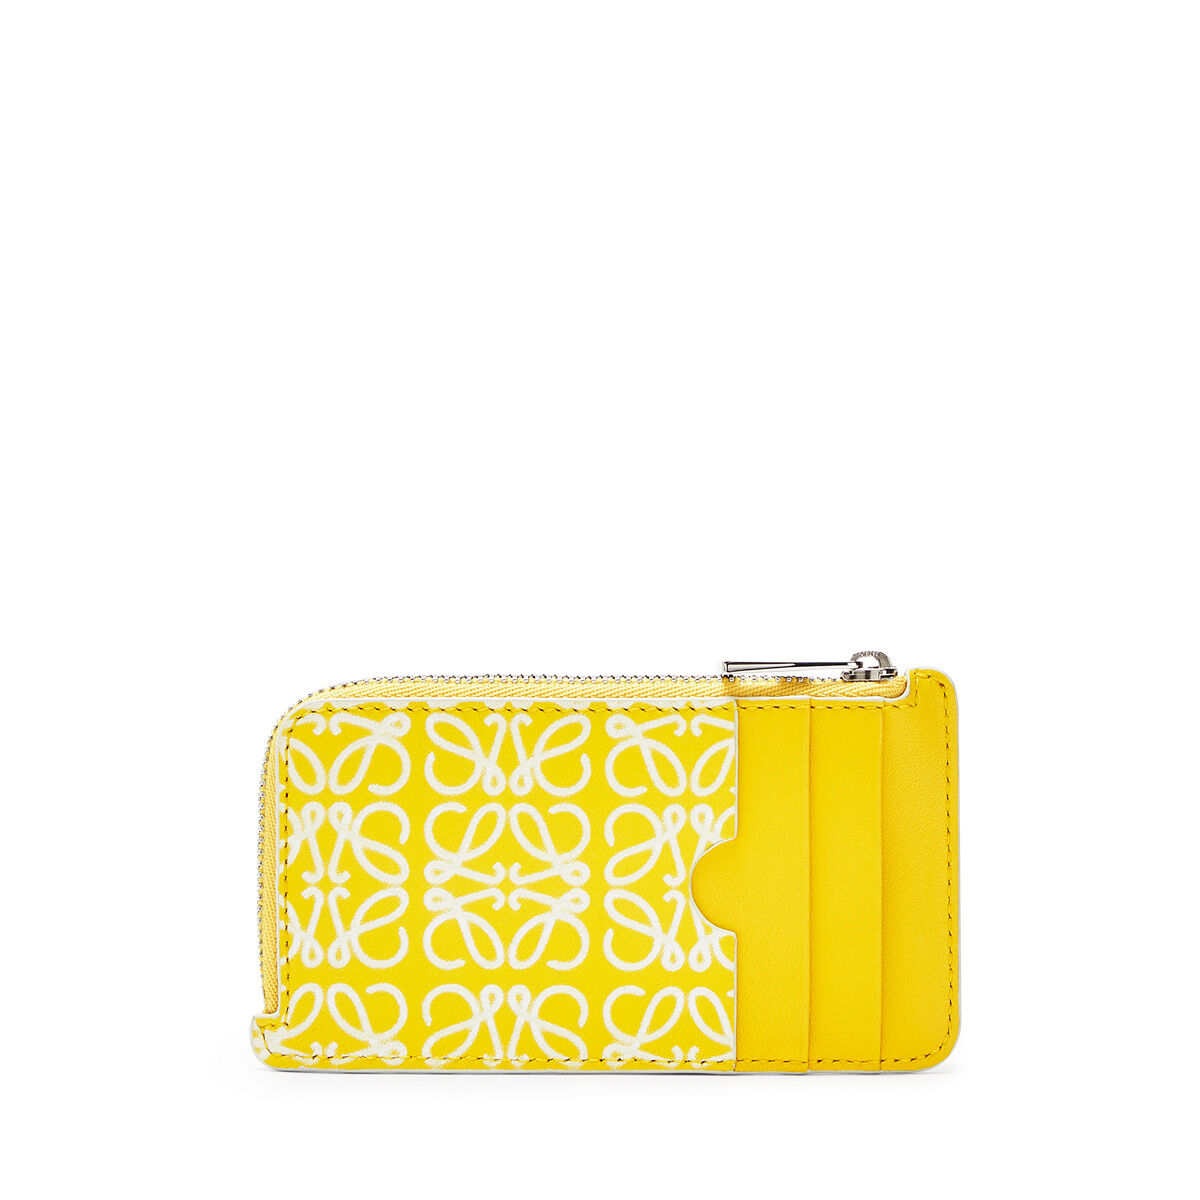 LOEWE Coin/Card Holder Yellow/White all